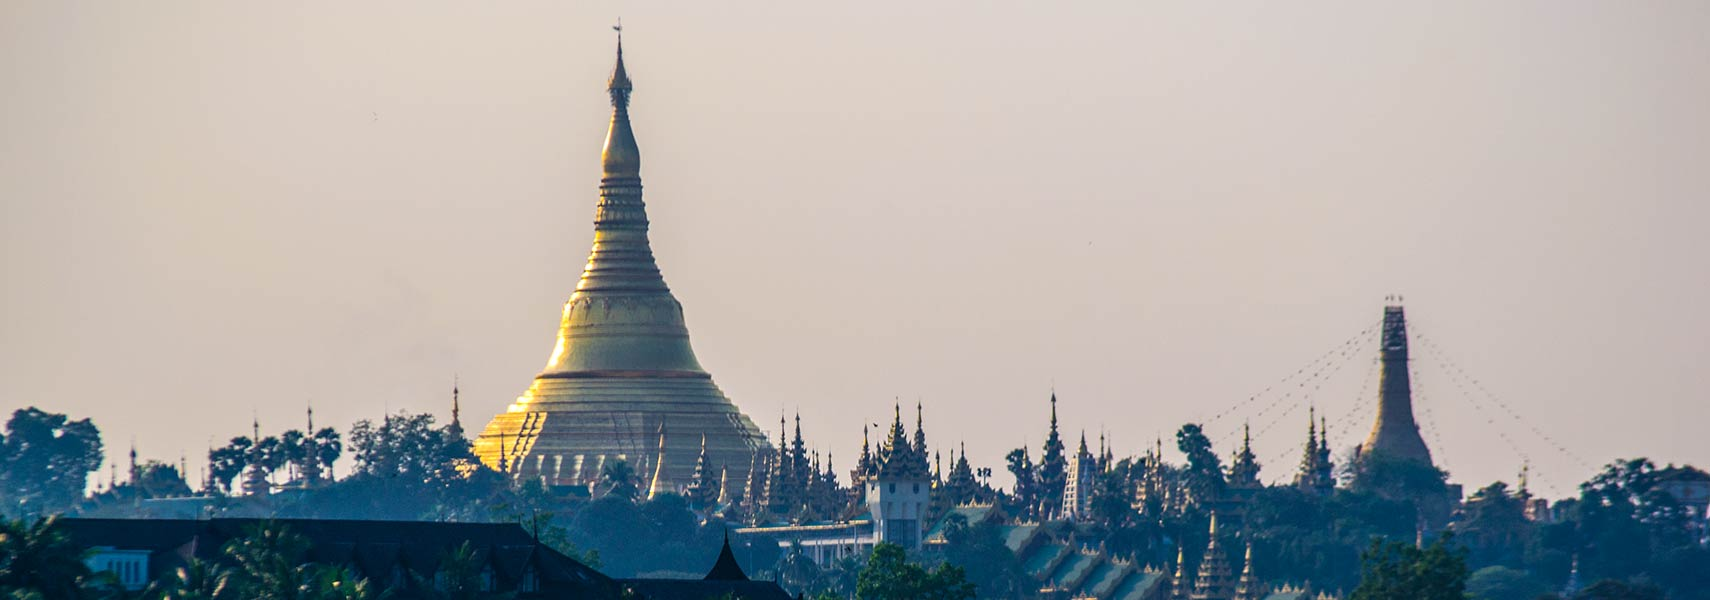 Shwedagon Pagoda at sunset, Yangon, Myanmar